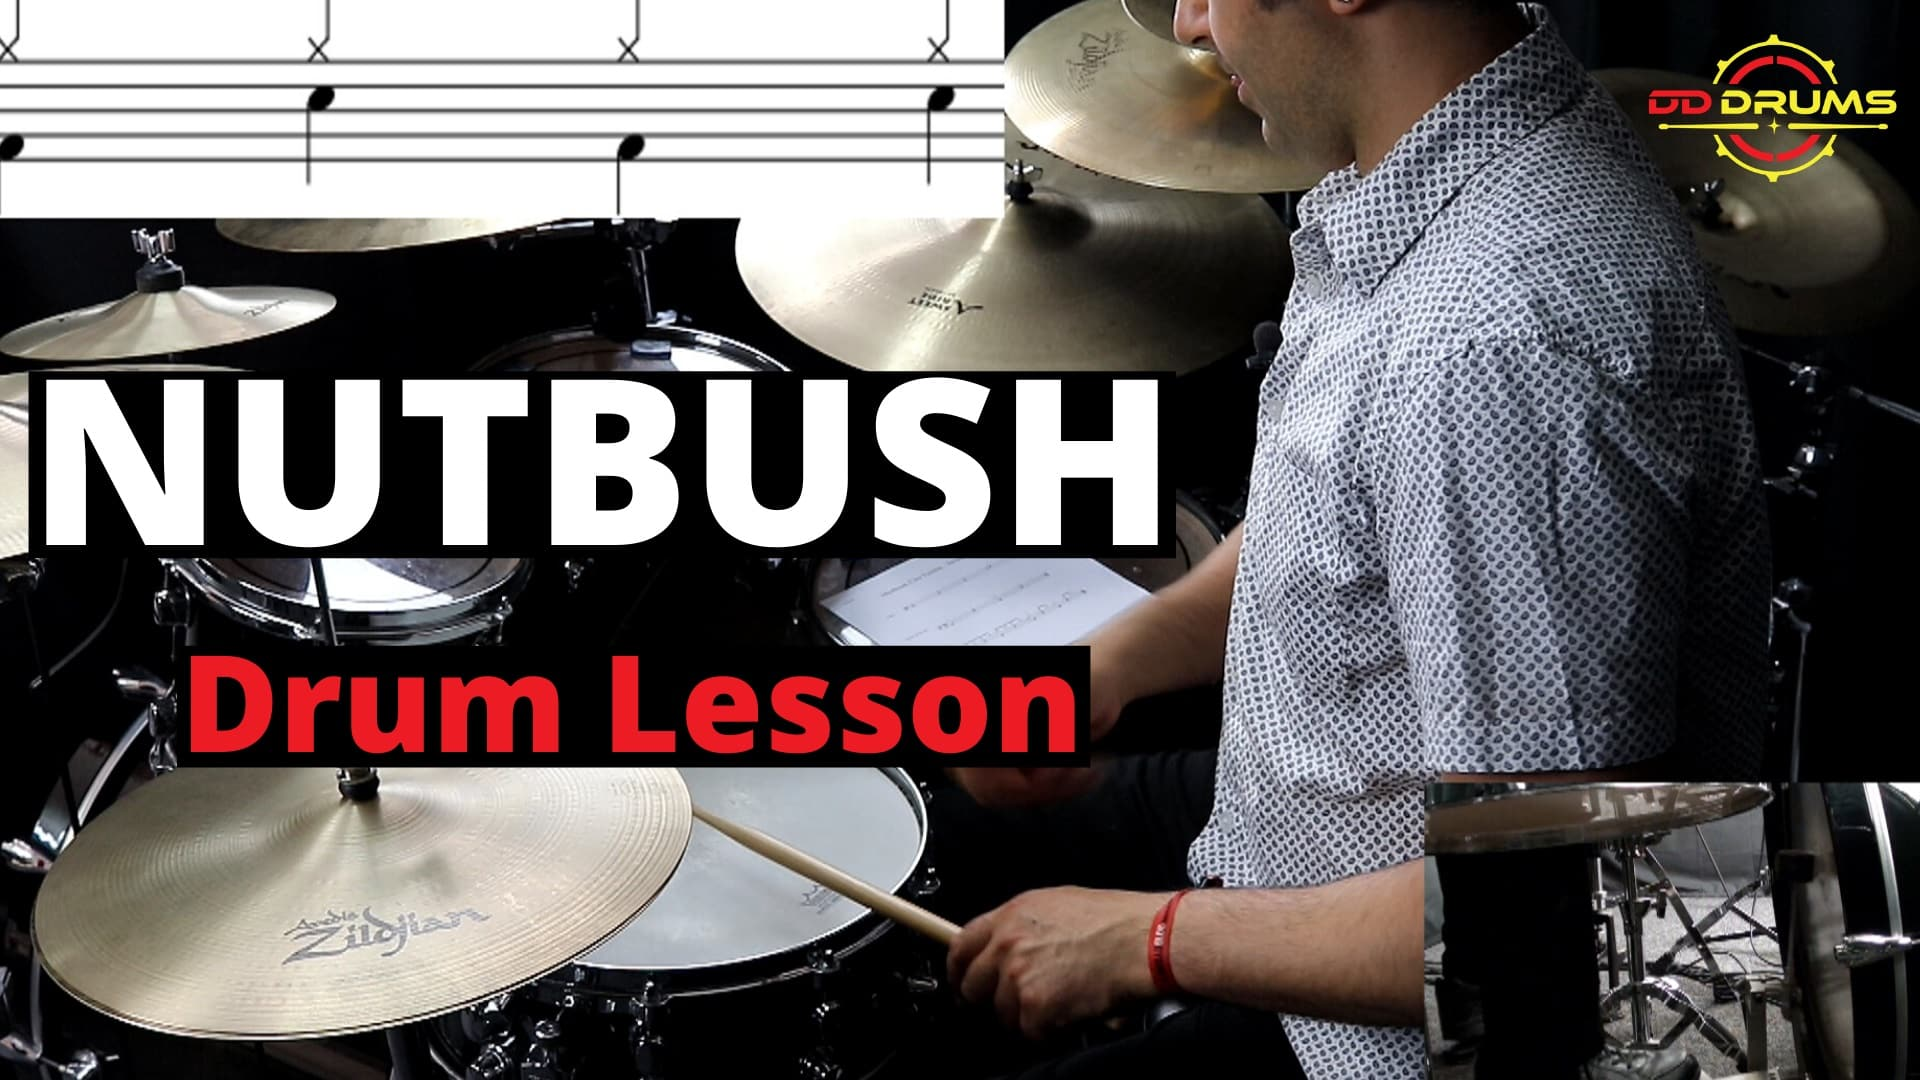 How to play Nutbush on Drums – Drum Lesson